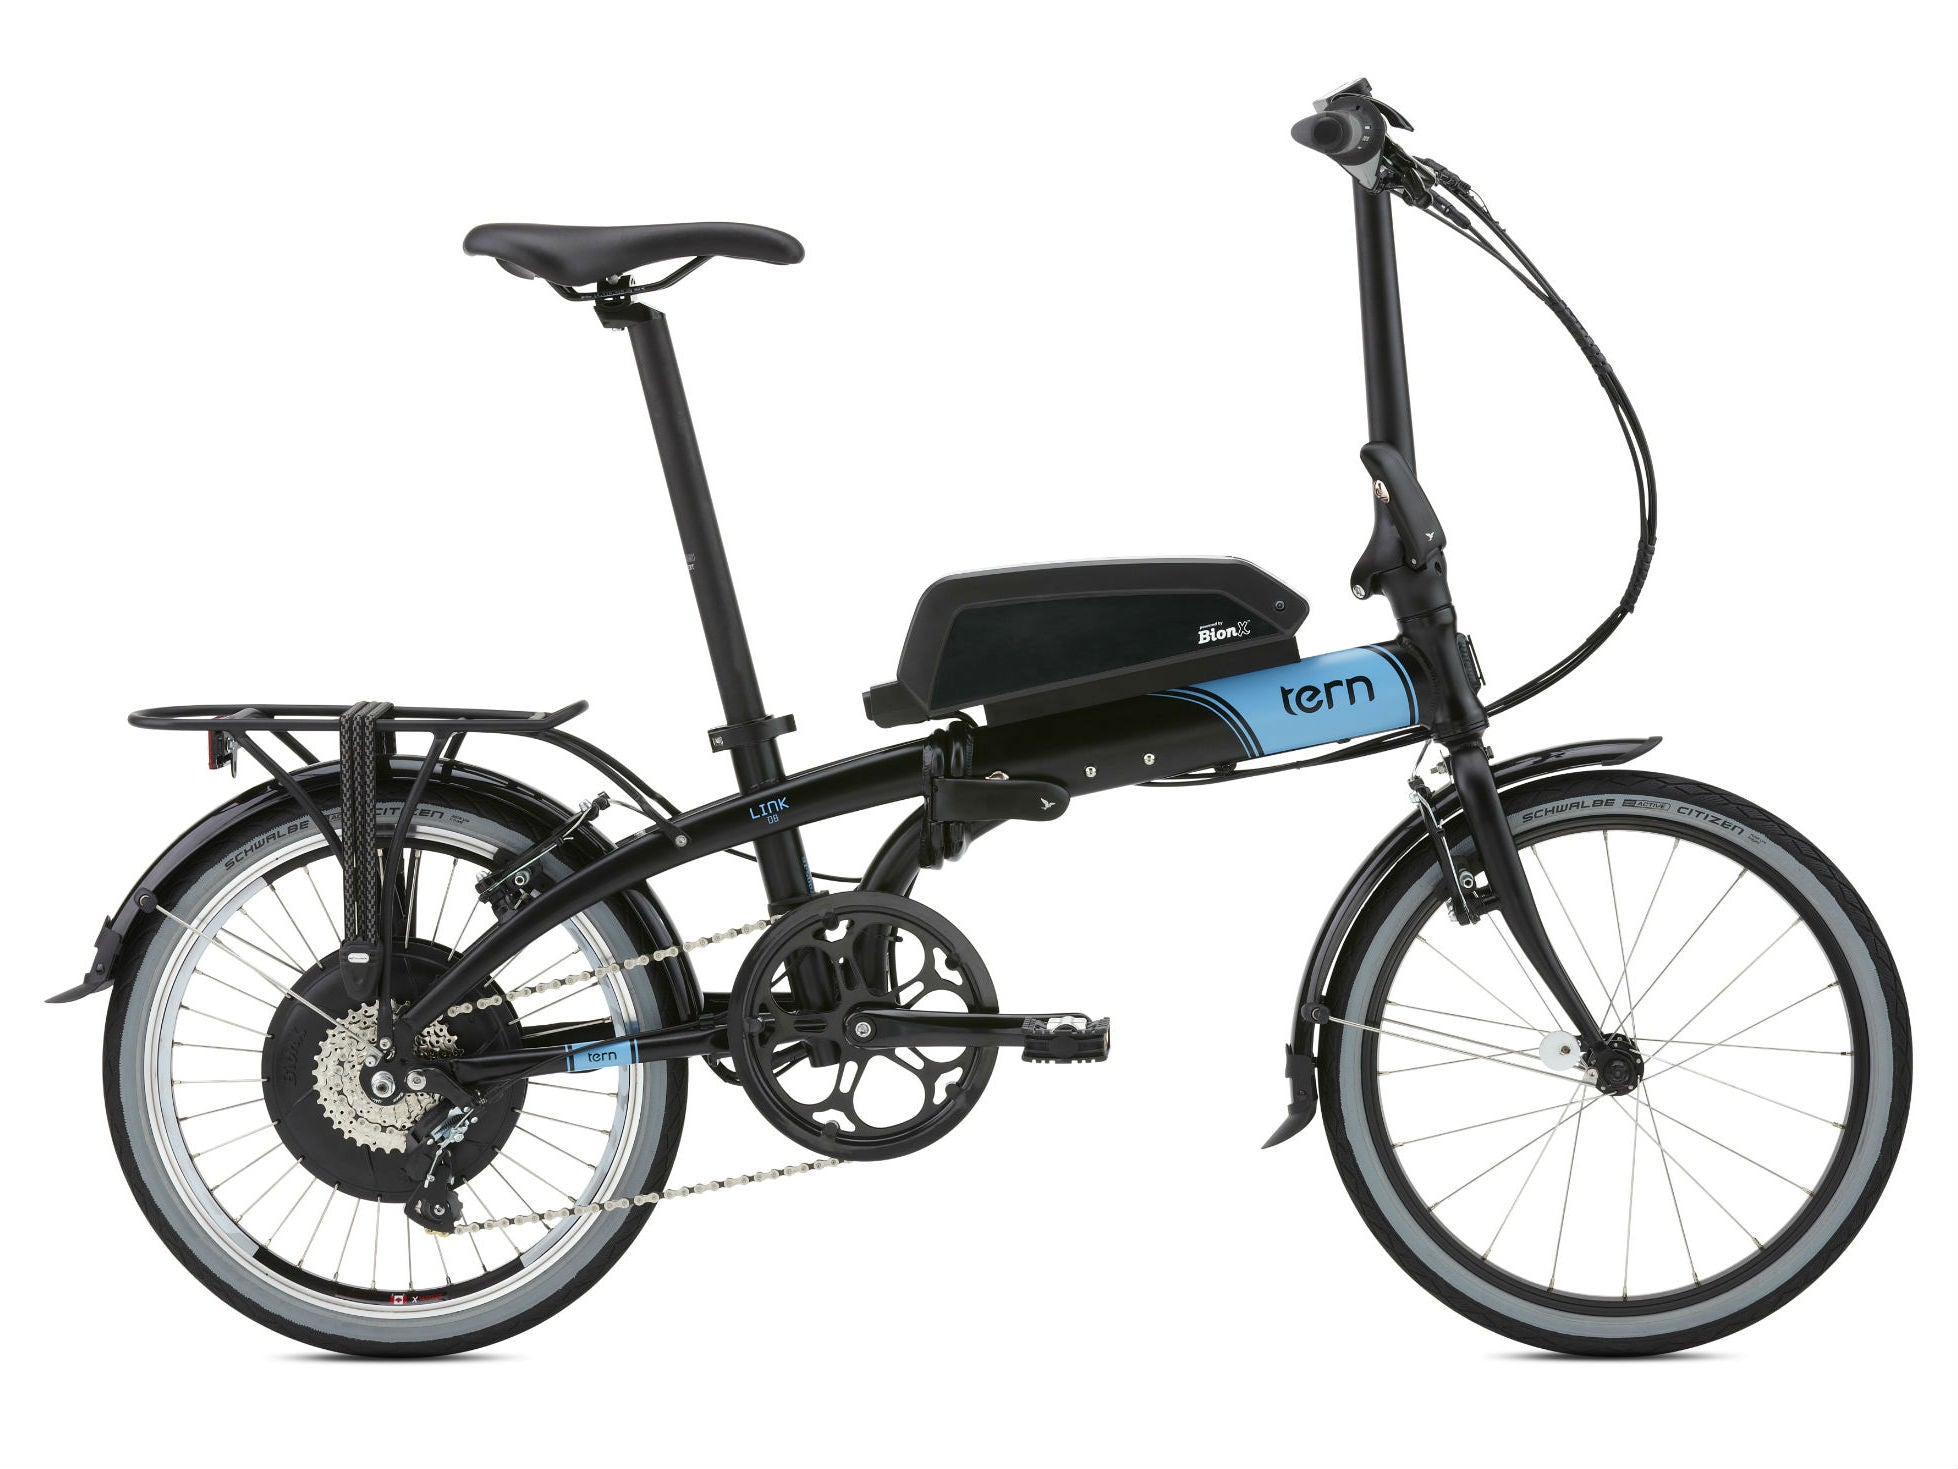 tern link d8 with bionx affordable electric bike